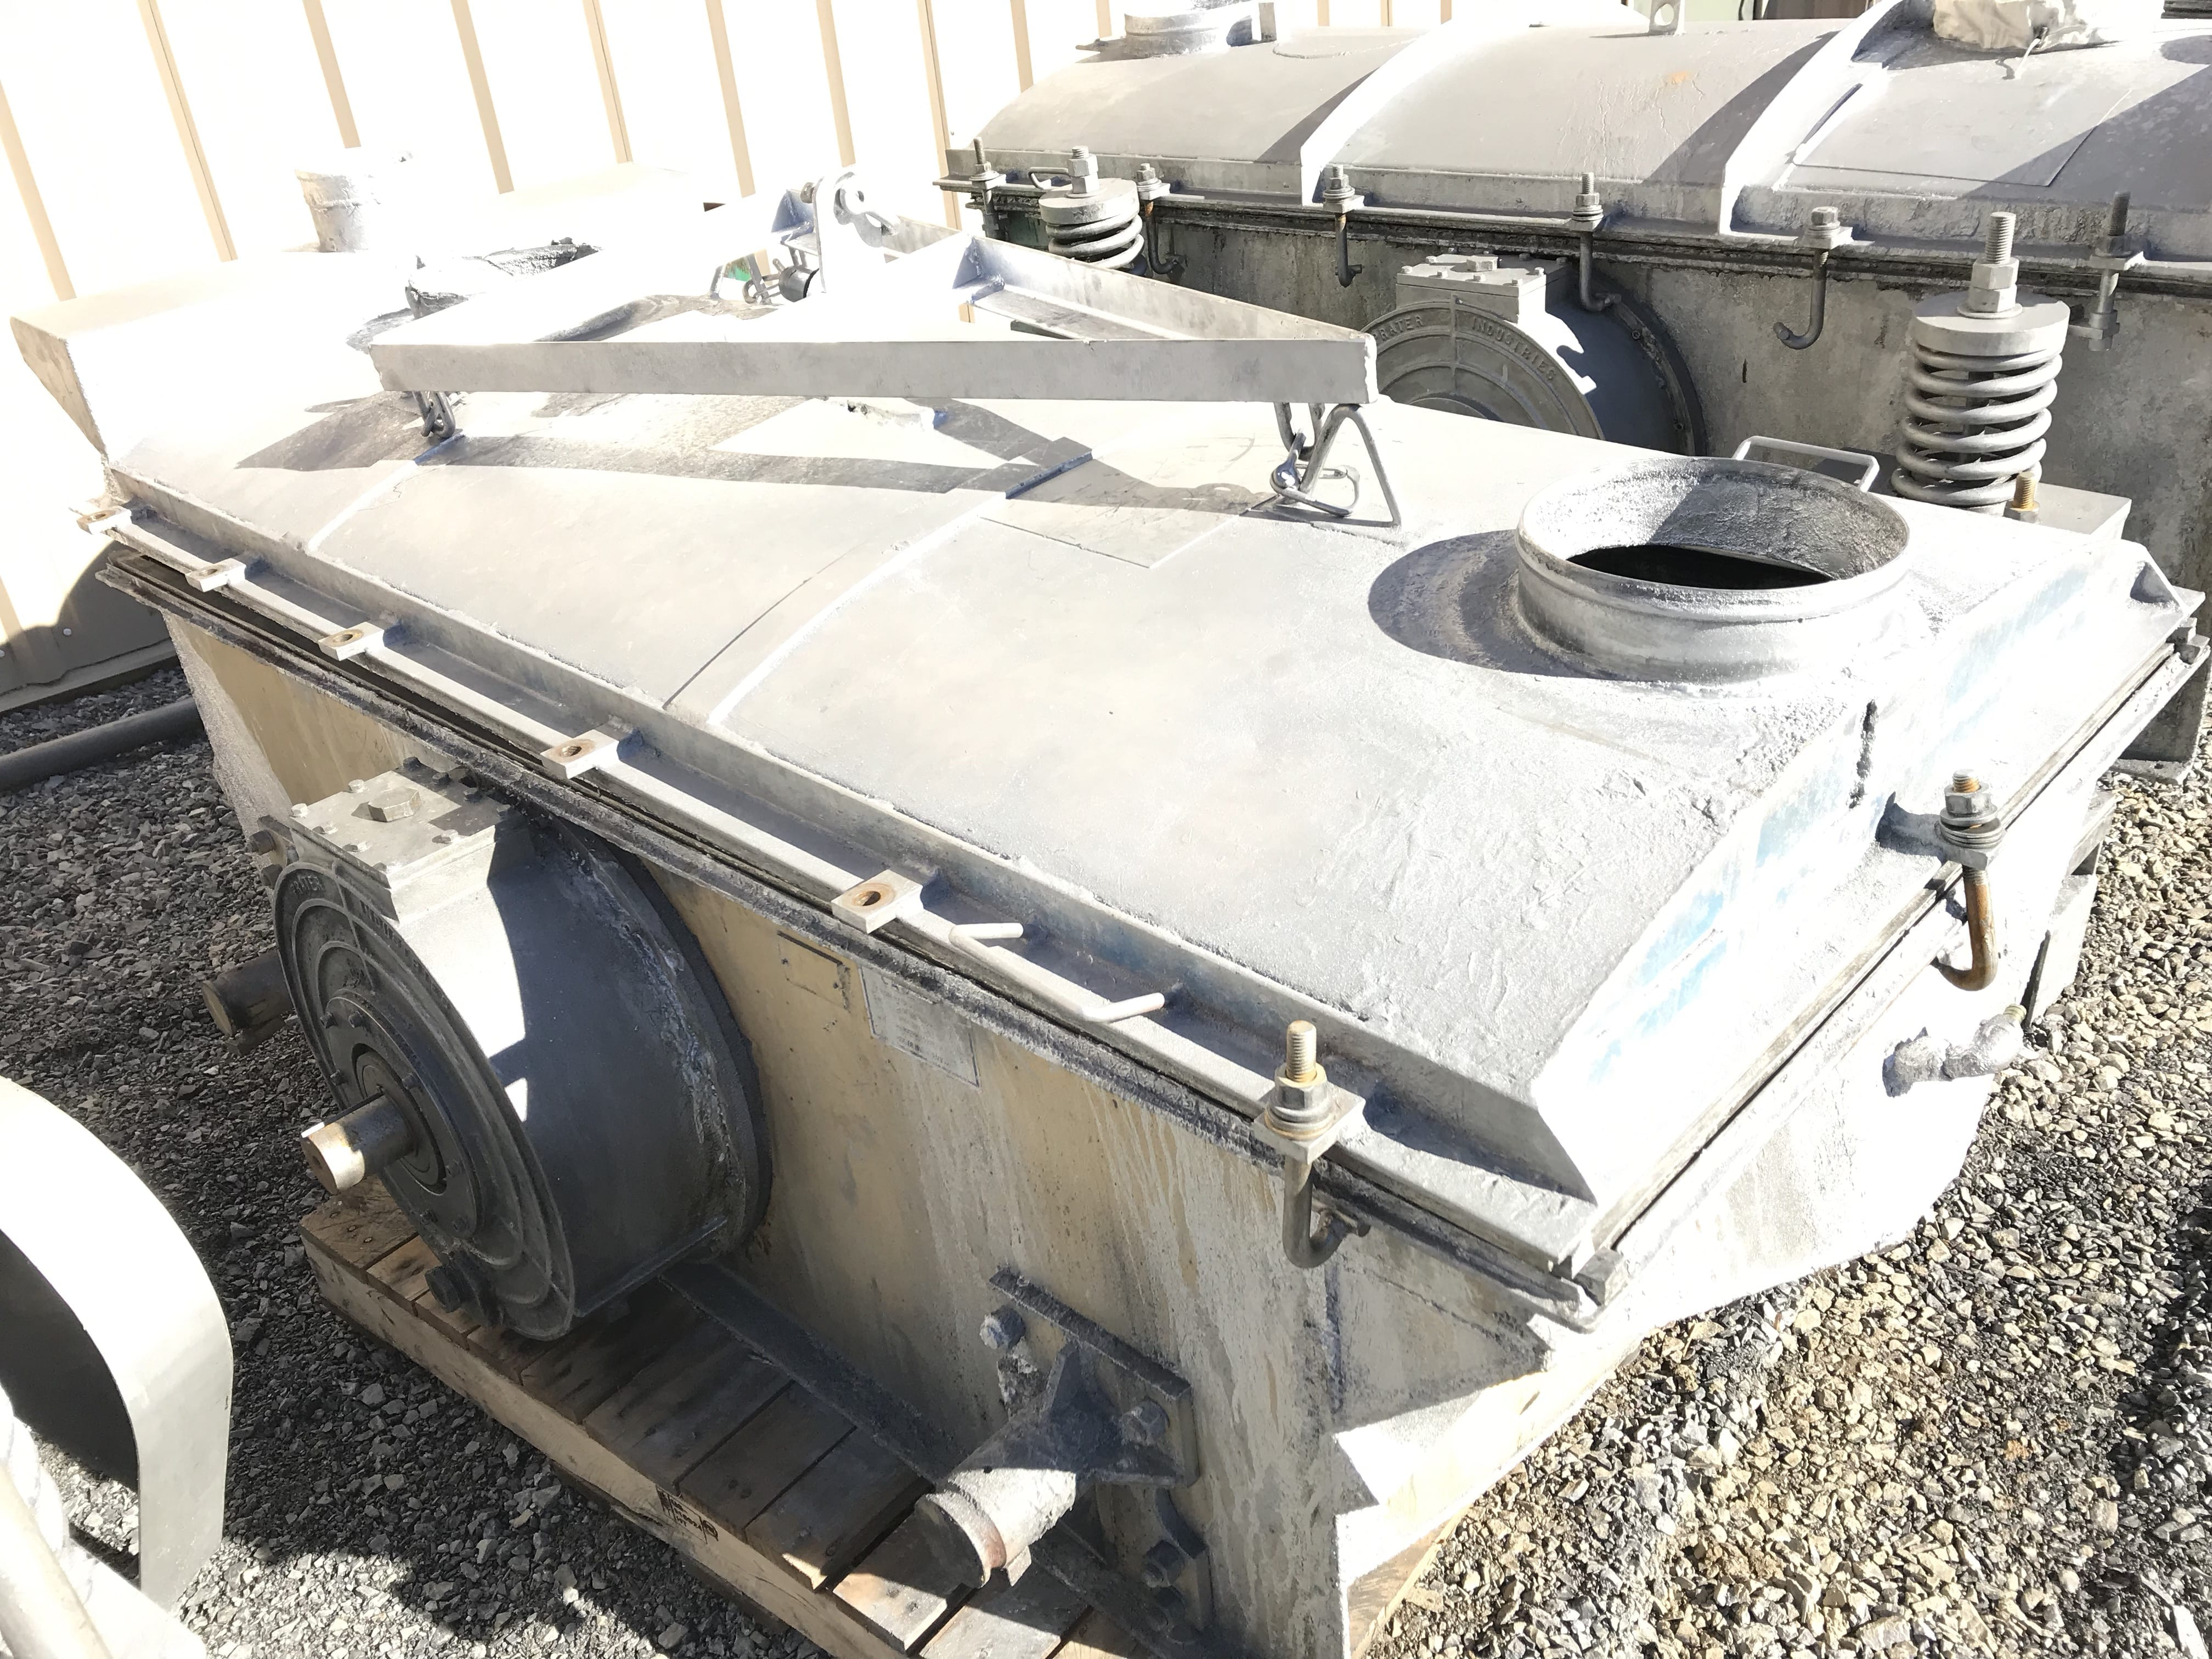 Prater Vibratory Screener/Cleaner VS2-36-1EX For Parts Only